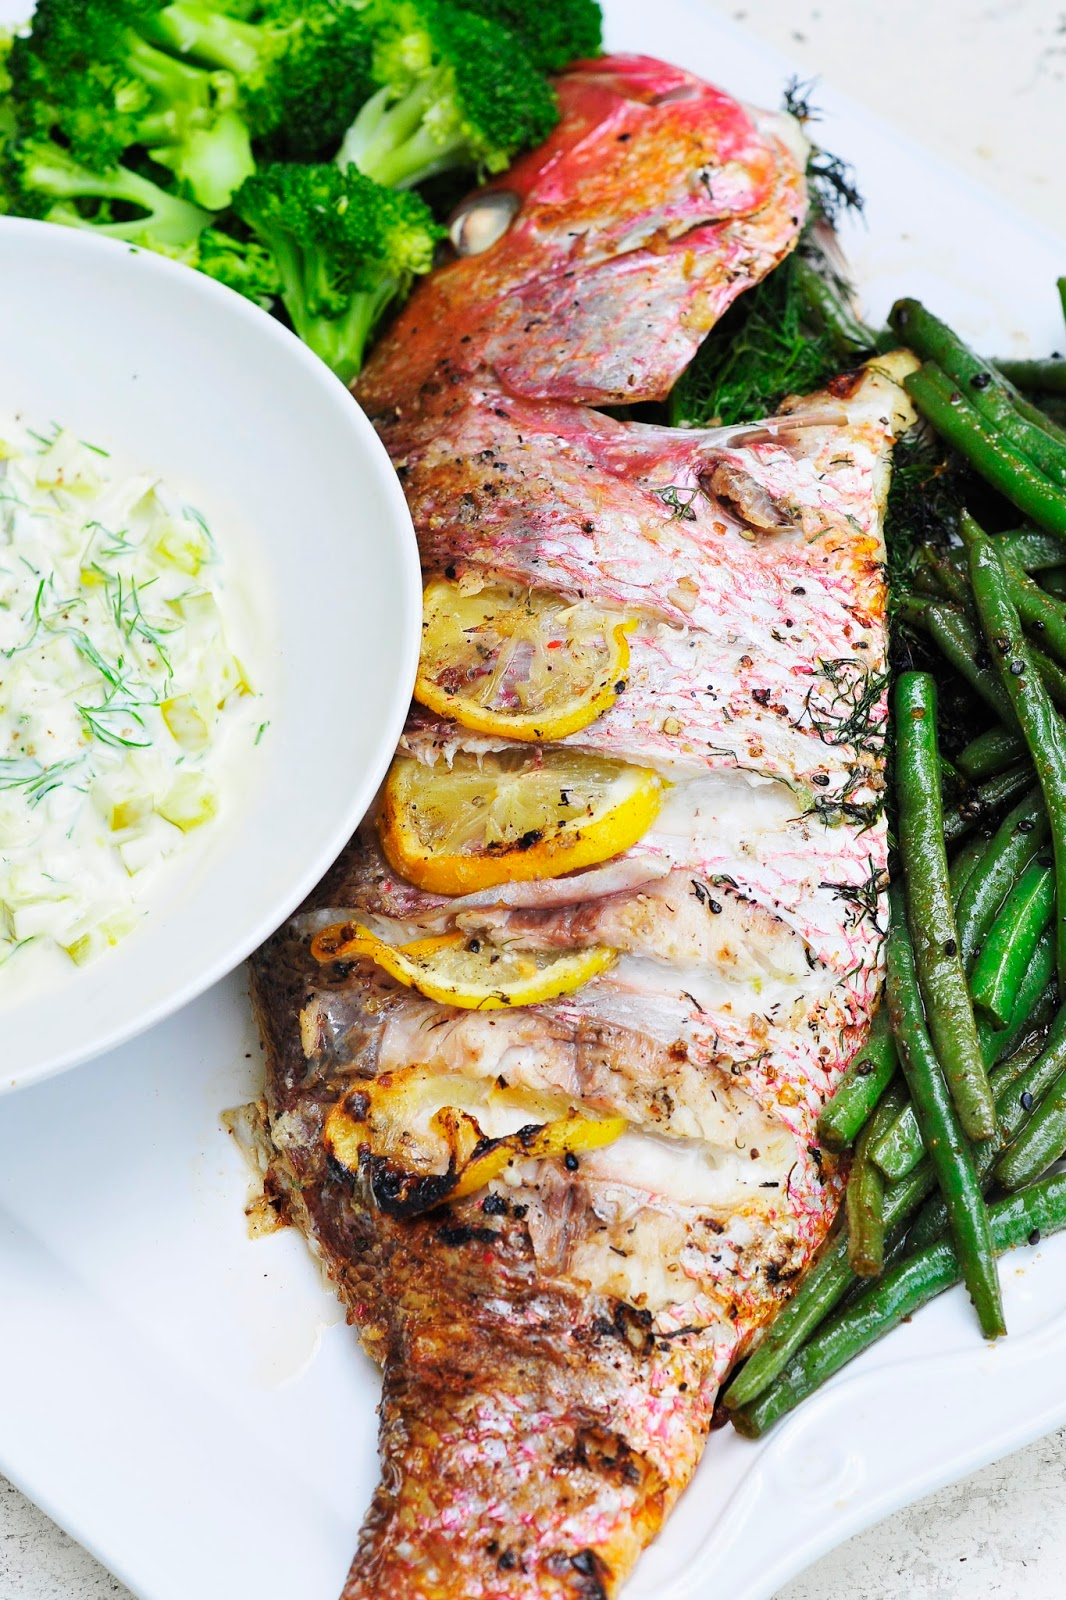 Grilled Red Snapper | Grilled Seafood Recipes For Your Next Seafood Feast | Mixed Seafood Grill Recipes